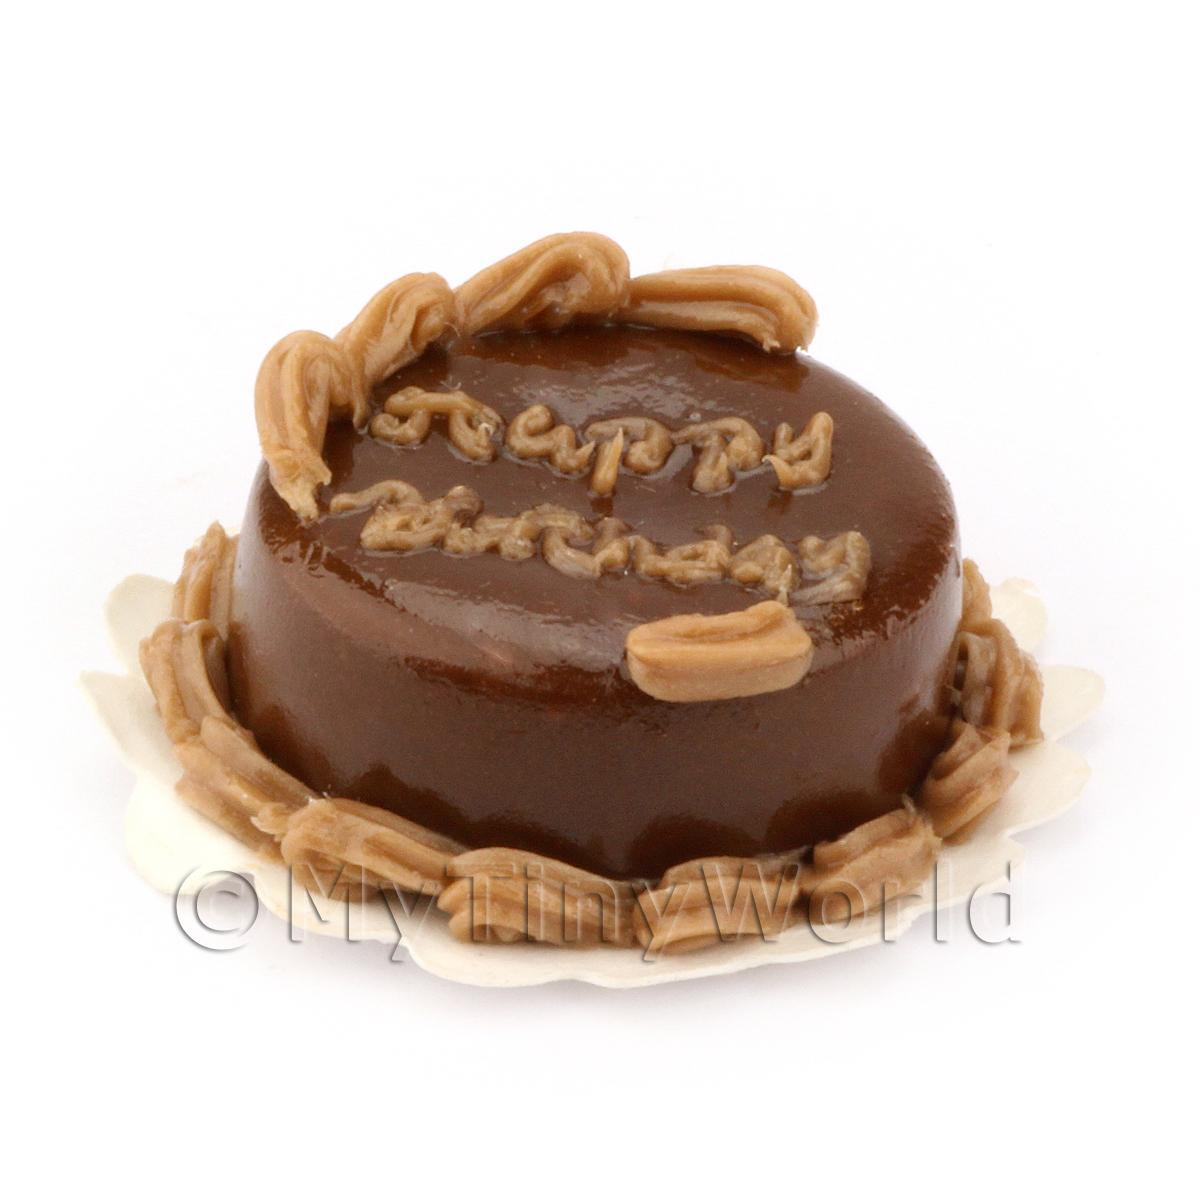 Dolls House Miniature Chocolate Cake With Writing